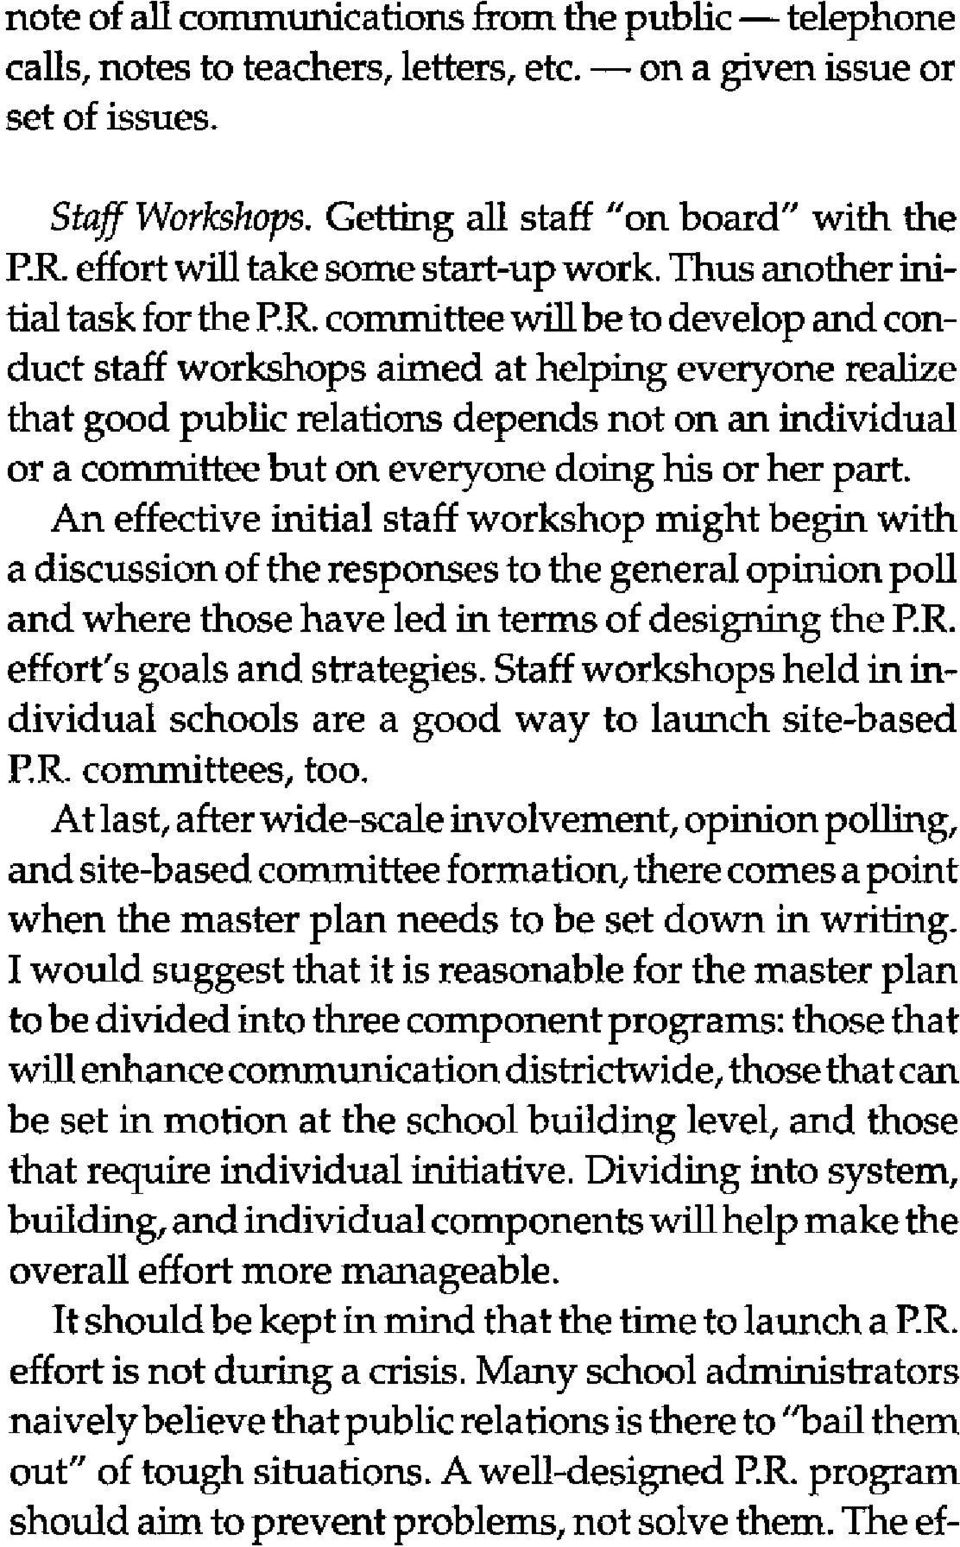 committee will be to develop and conduct staff workshops aimed at helping everyone realize that good public relations depends not on an individual or a committee but on everyone doing his or her part.